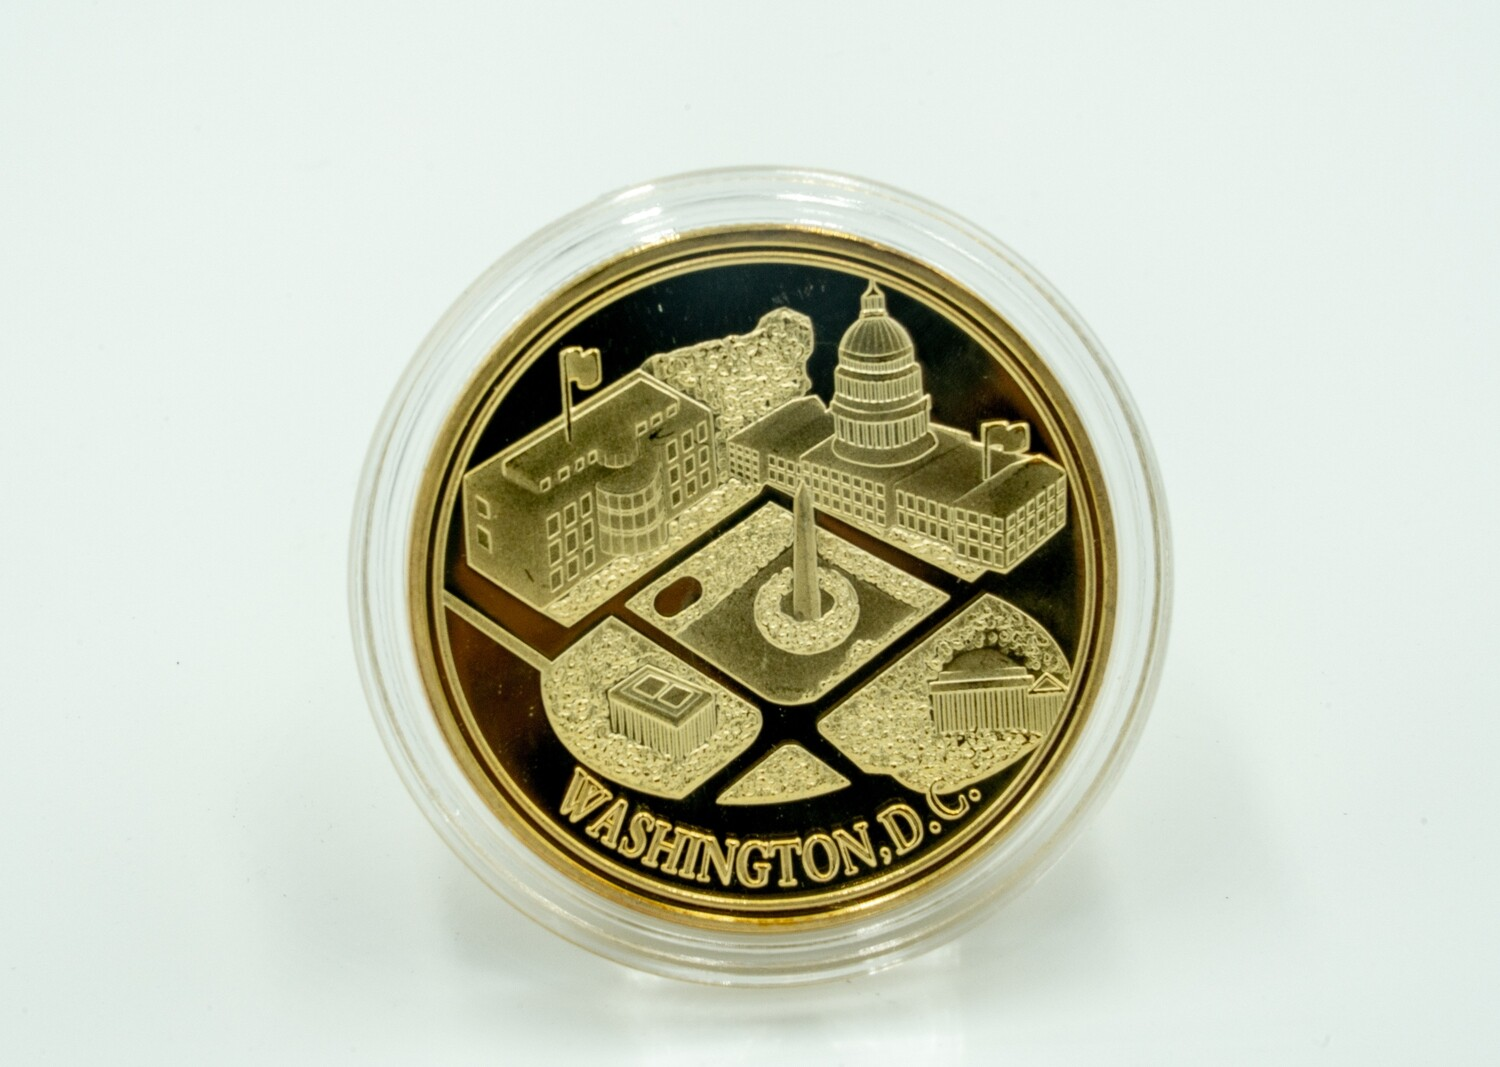 Five D.C. Monuments Coin